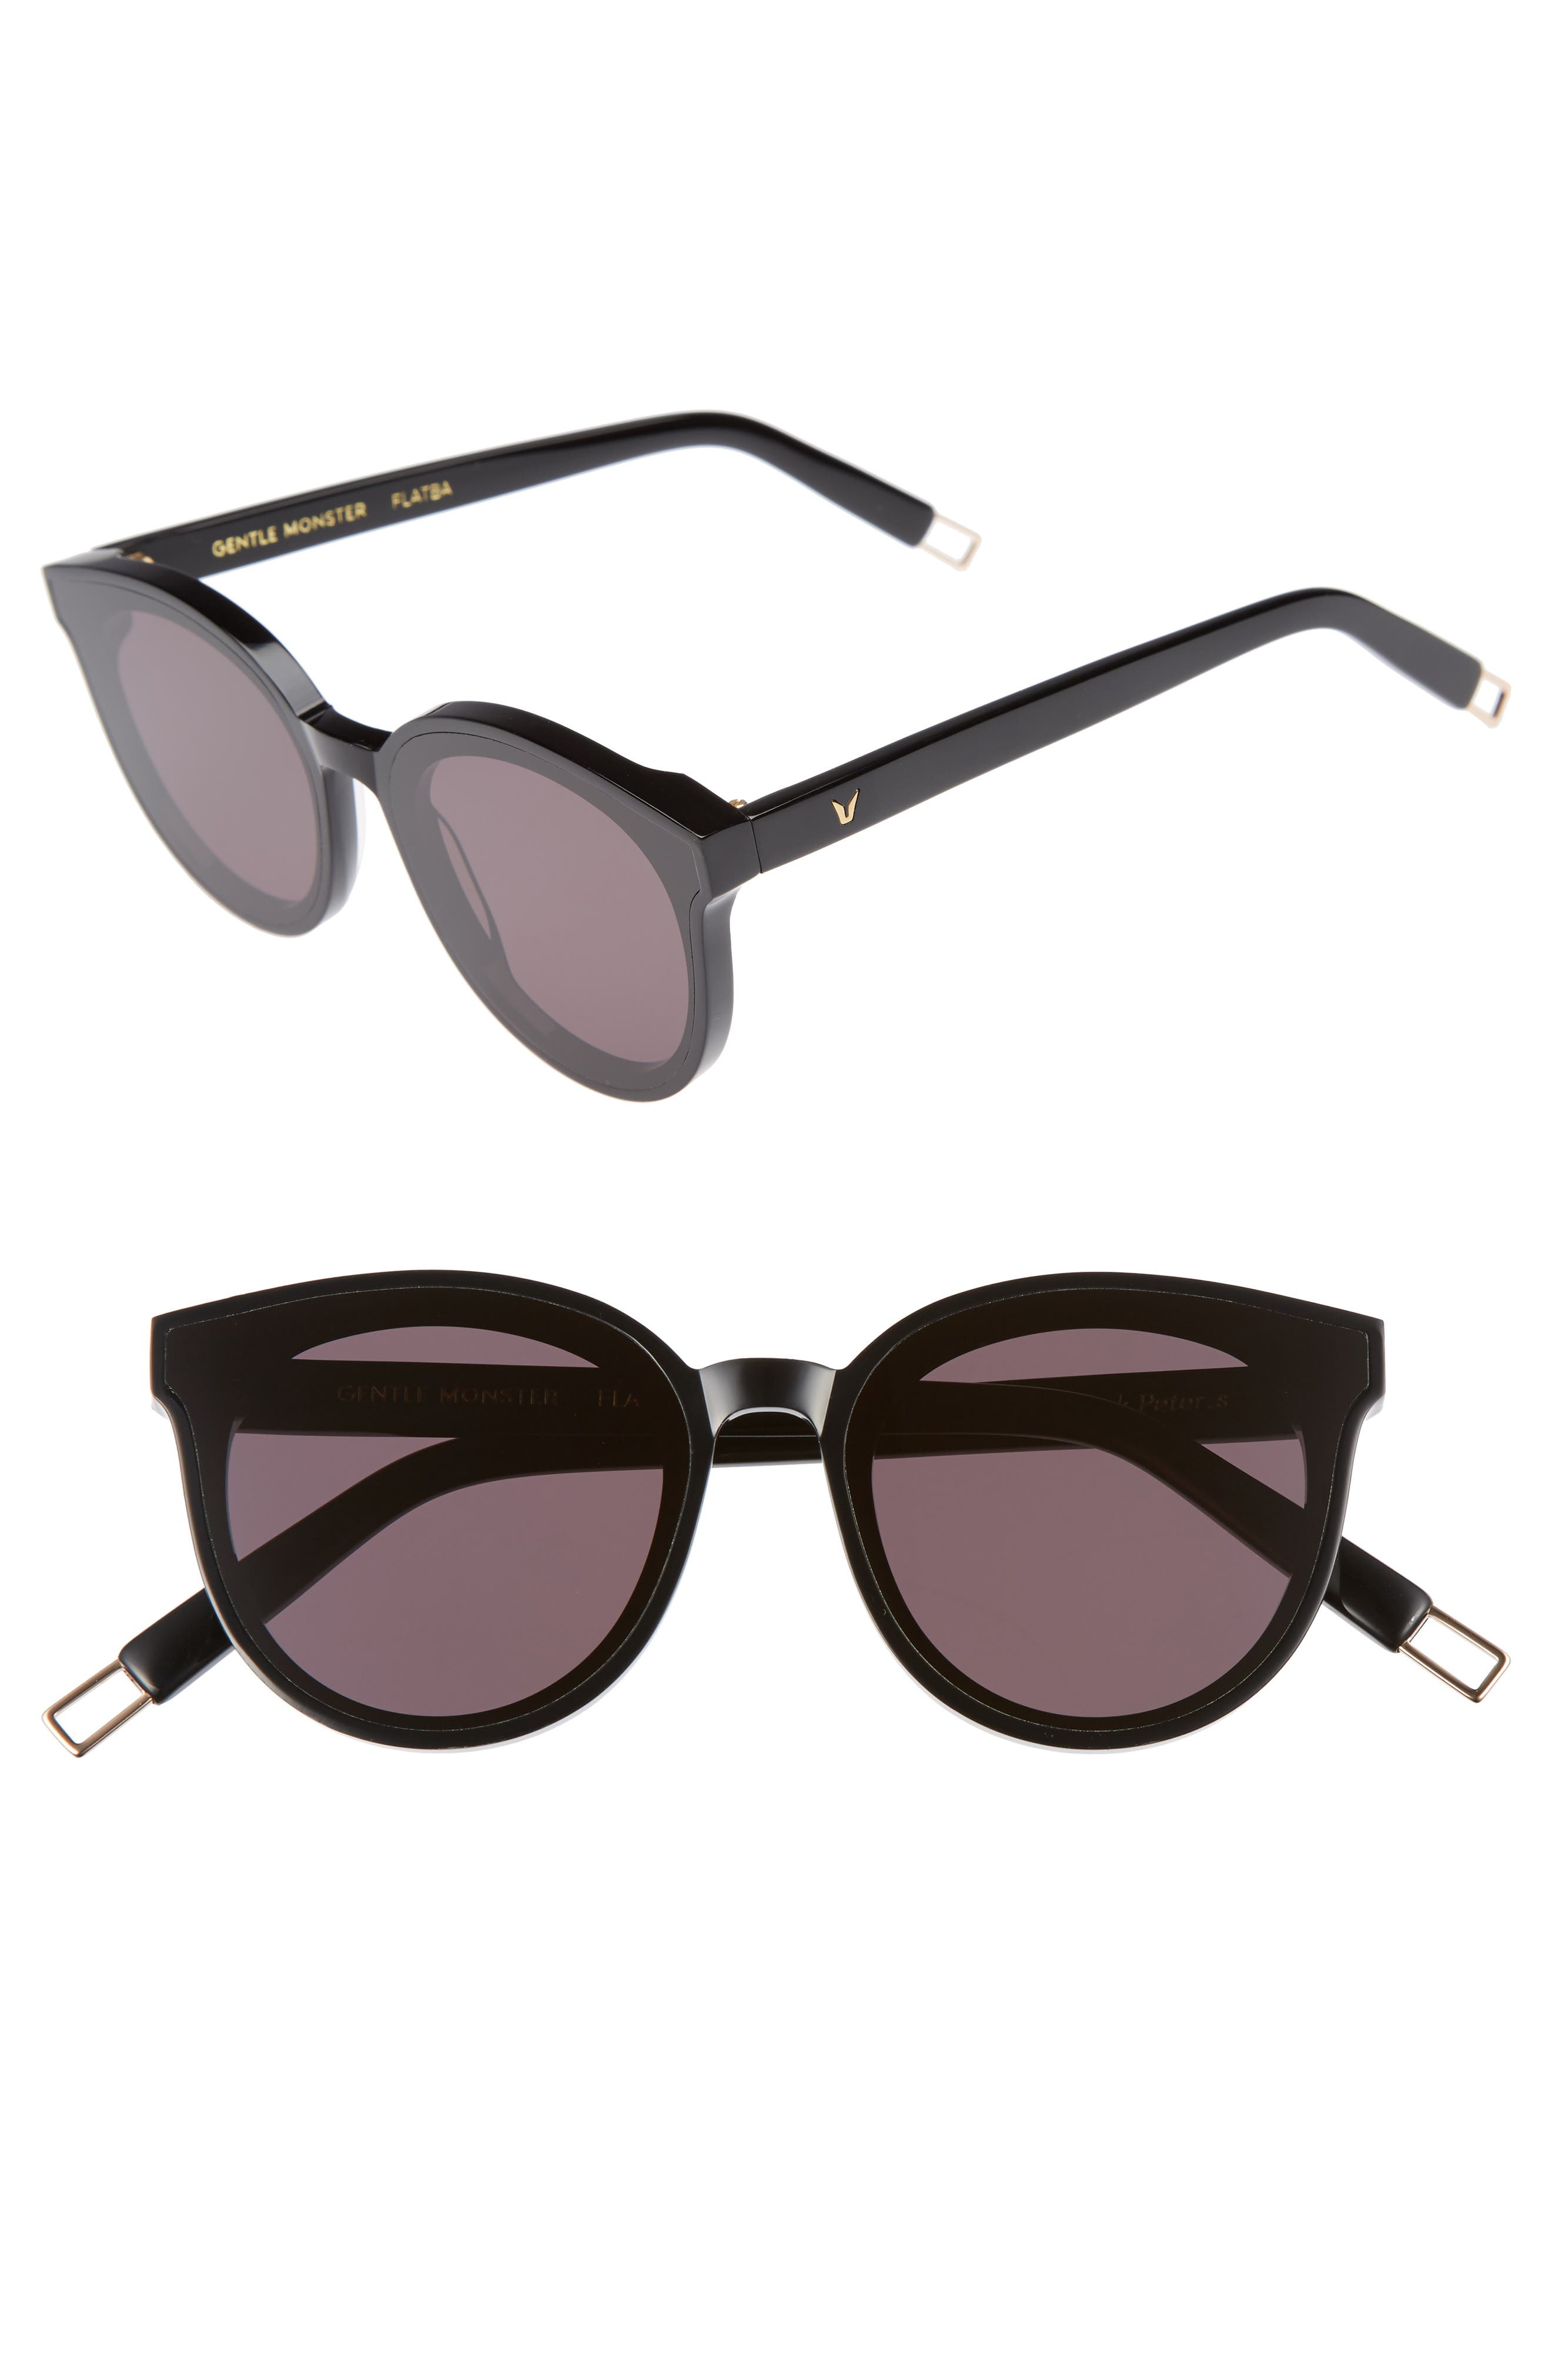 Black Peter 61mm Rounded Sunglasses,                             Main thumbnail 1, color,                             001